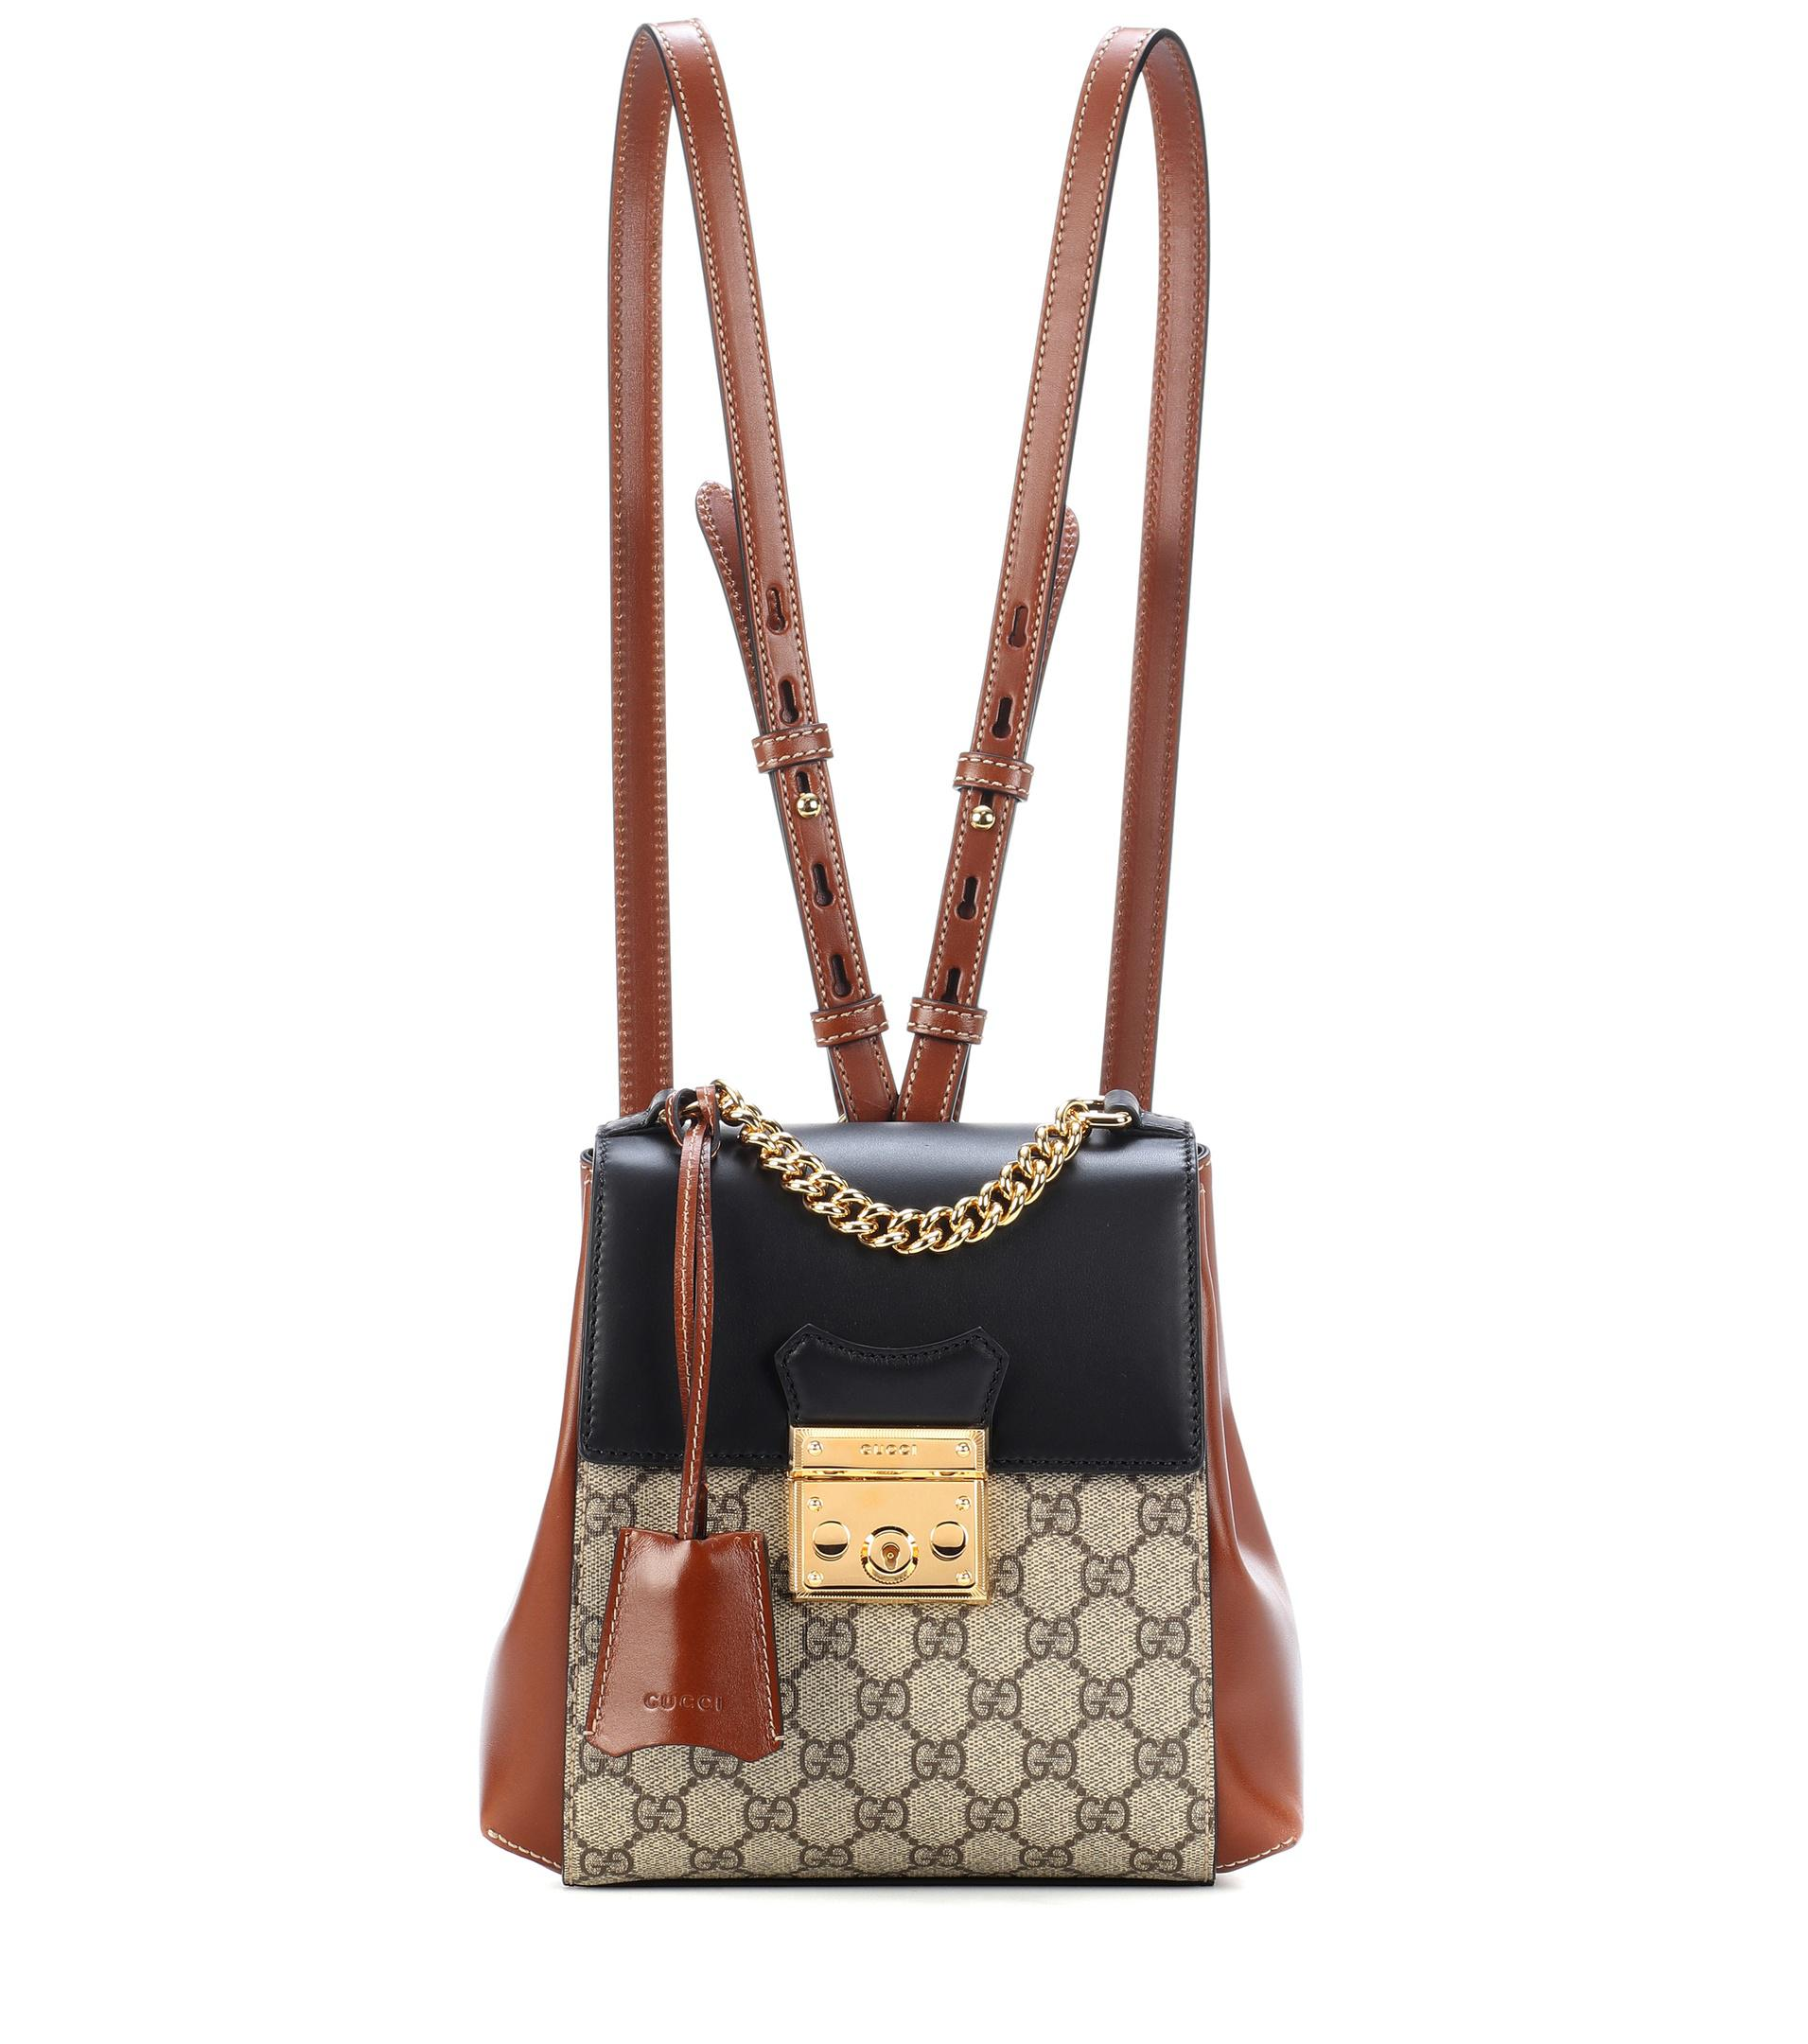 eebcdd26881 Gucci Brown And Black Padlock GG Supreme Backpack in Brown - Lyst